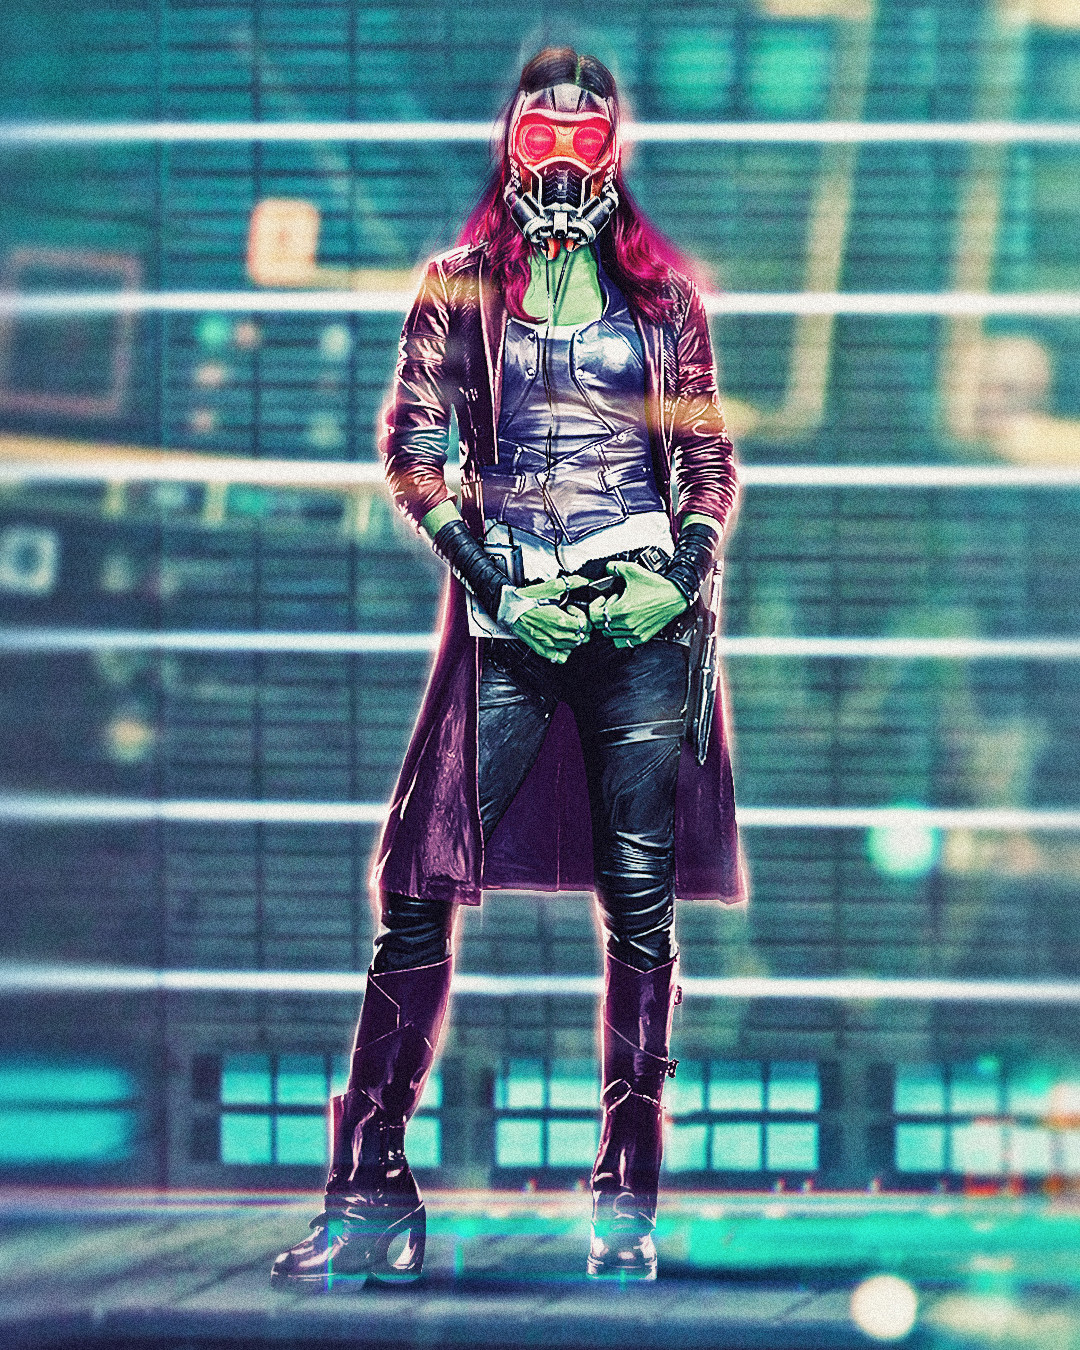 Gamora with Star-Lord's mask